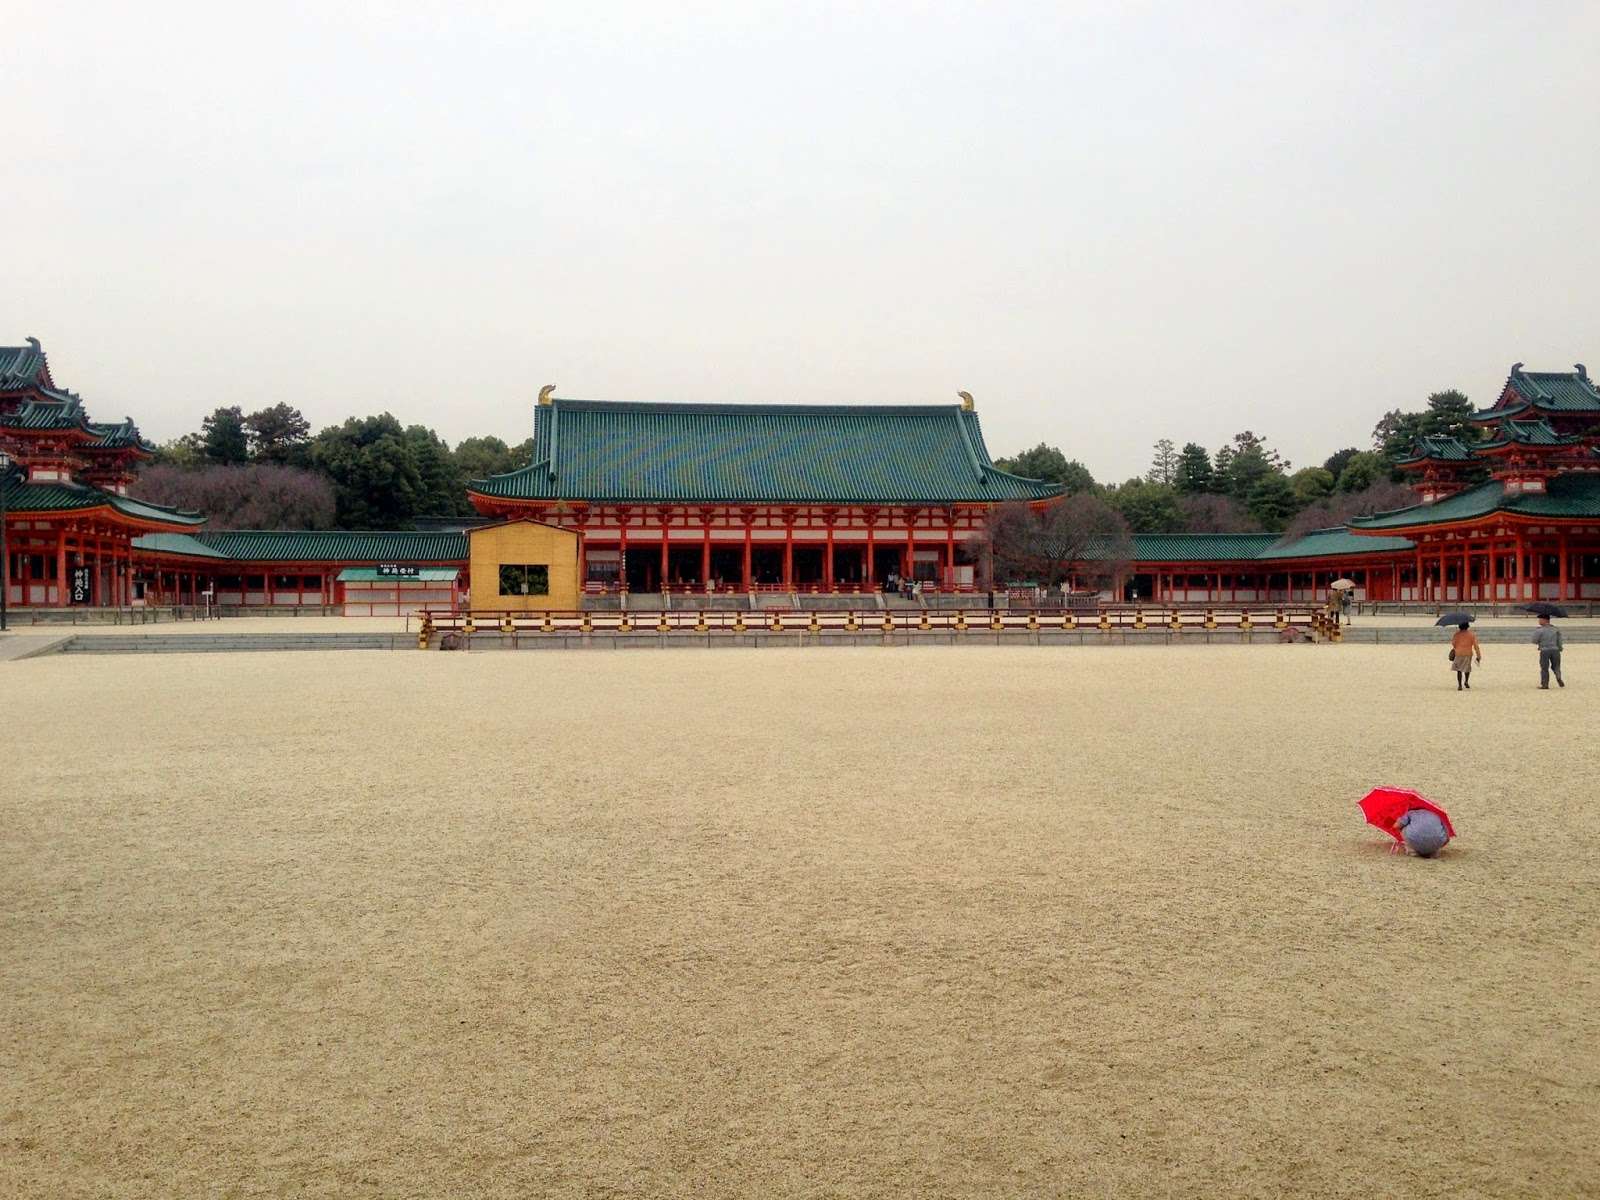 The grounds of Heian-jingu, Heian Shrine